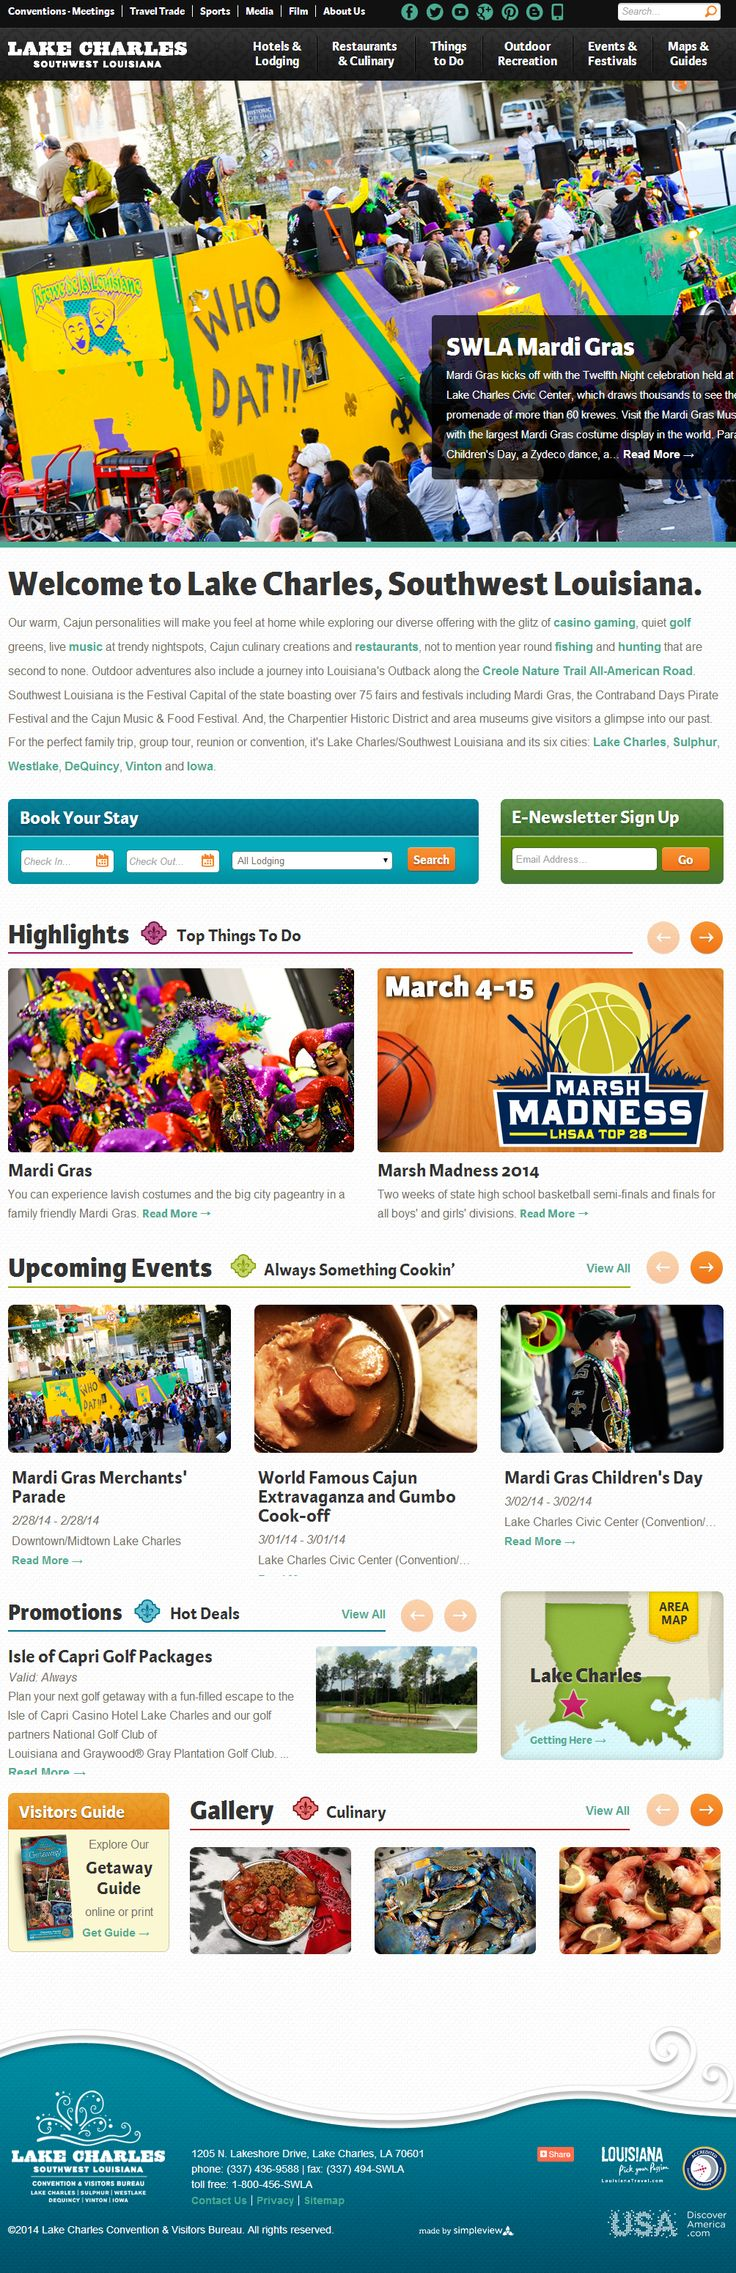 Check out www.visitlakecharles.org for the latest events and tourist info on Southwest Louisiana!